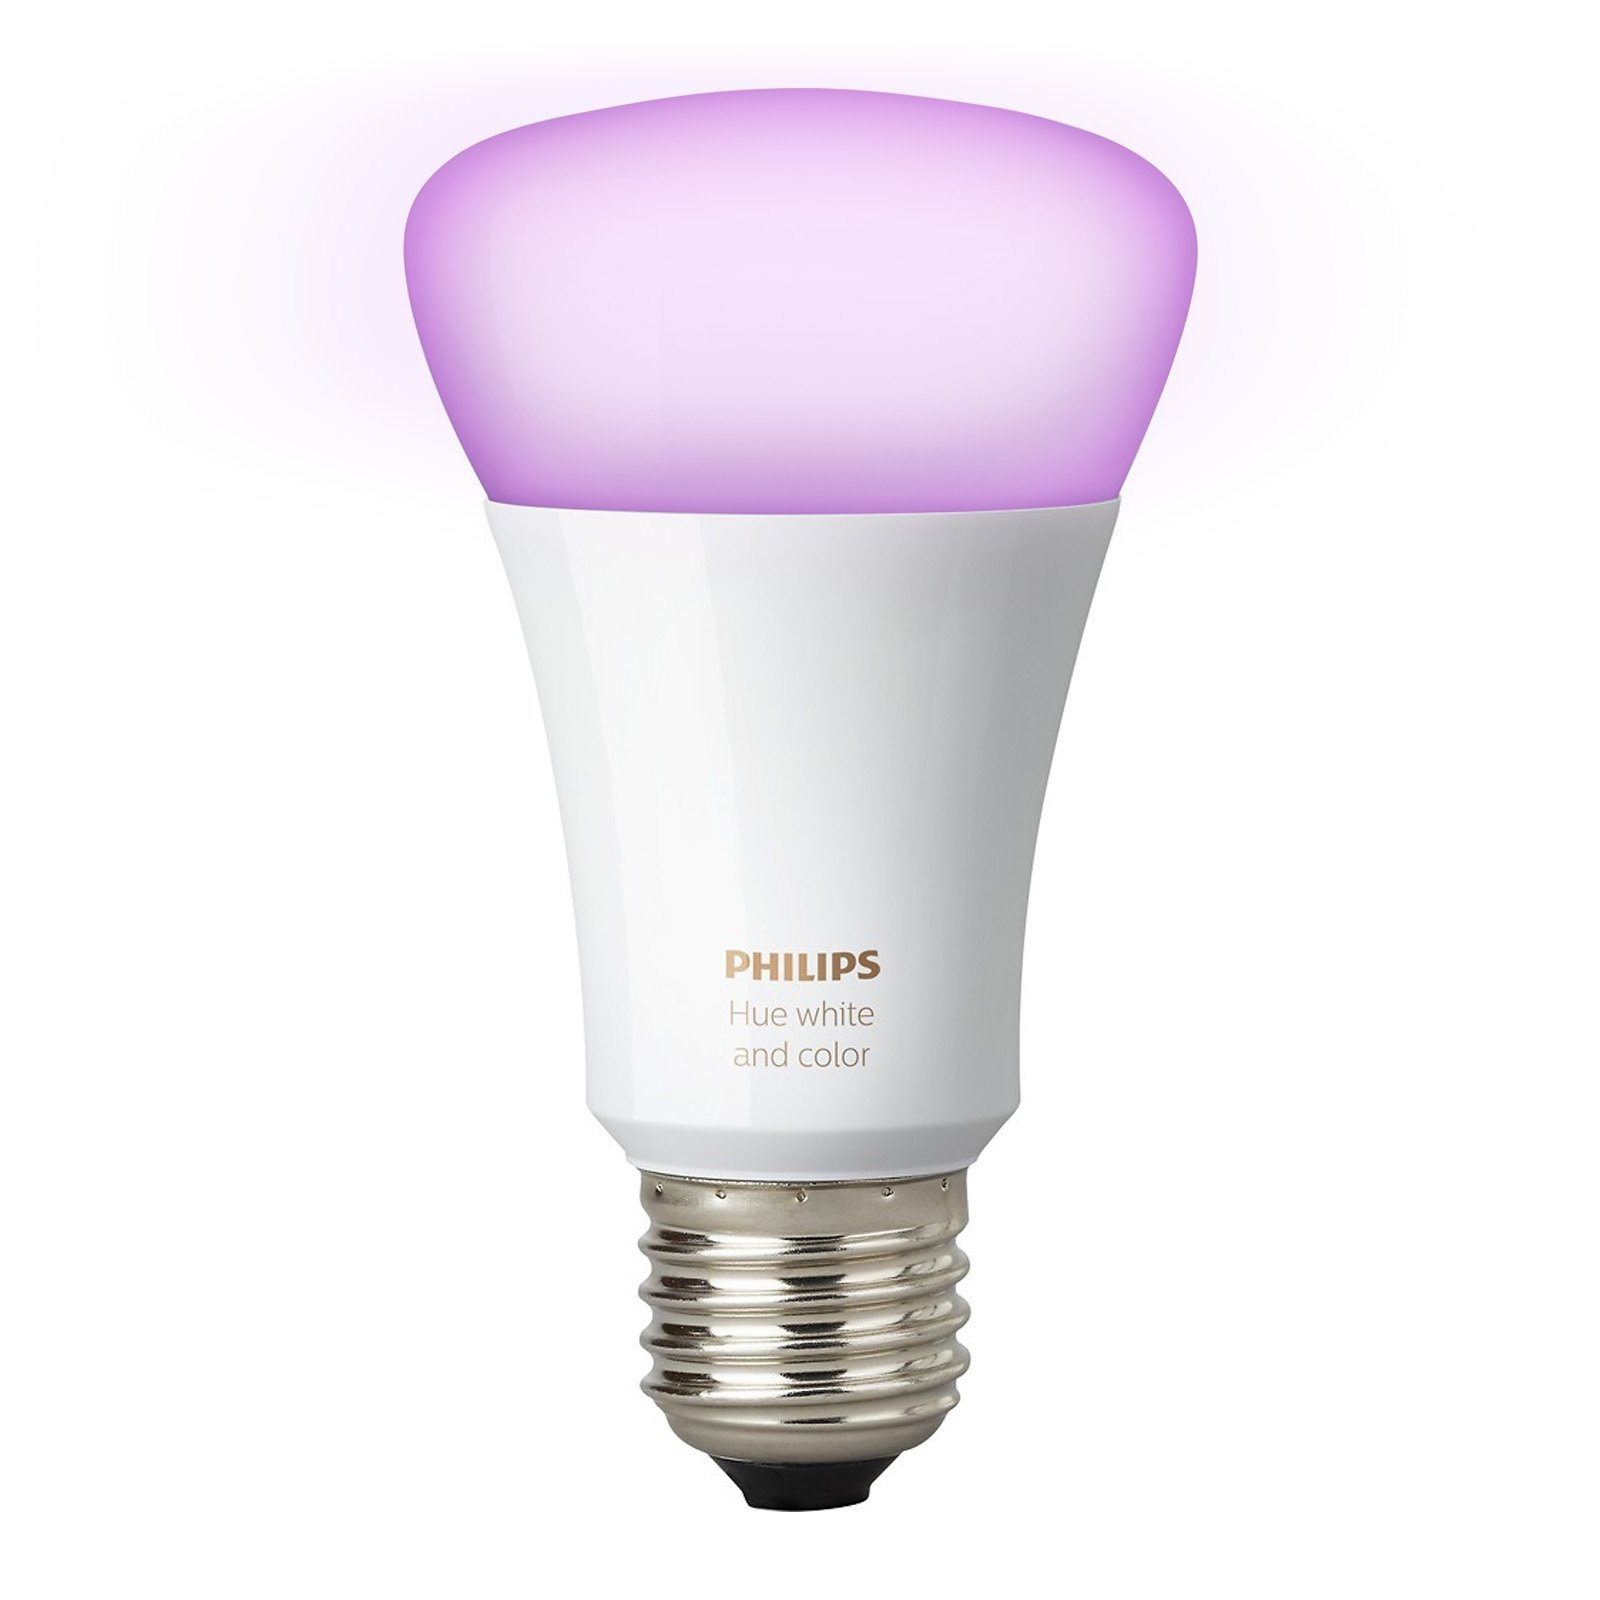 Philips Hue White and Color Ambiance 3rd Generation A19 10W Equivalent Dimmable LED Smart Bulb (Renewed) by Philips (Image #2)